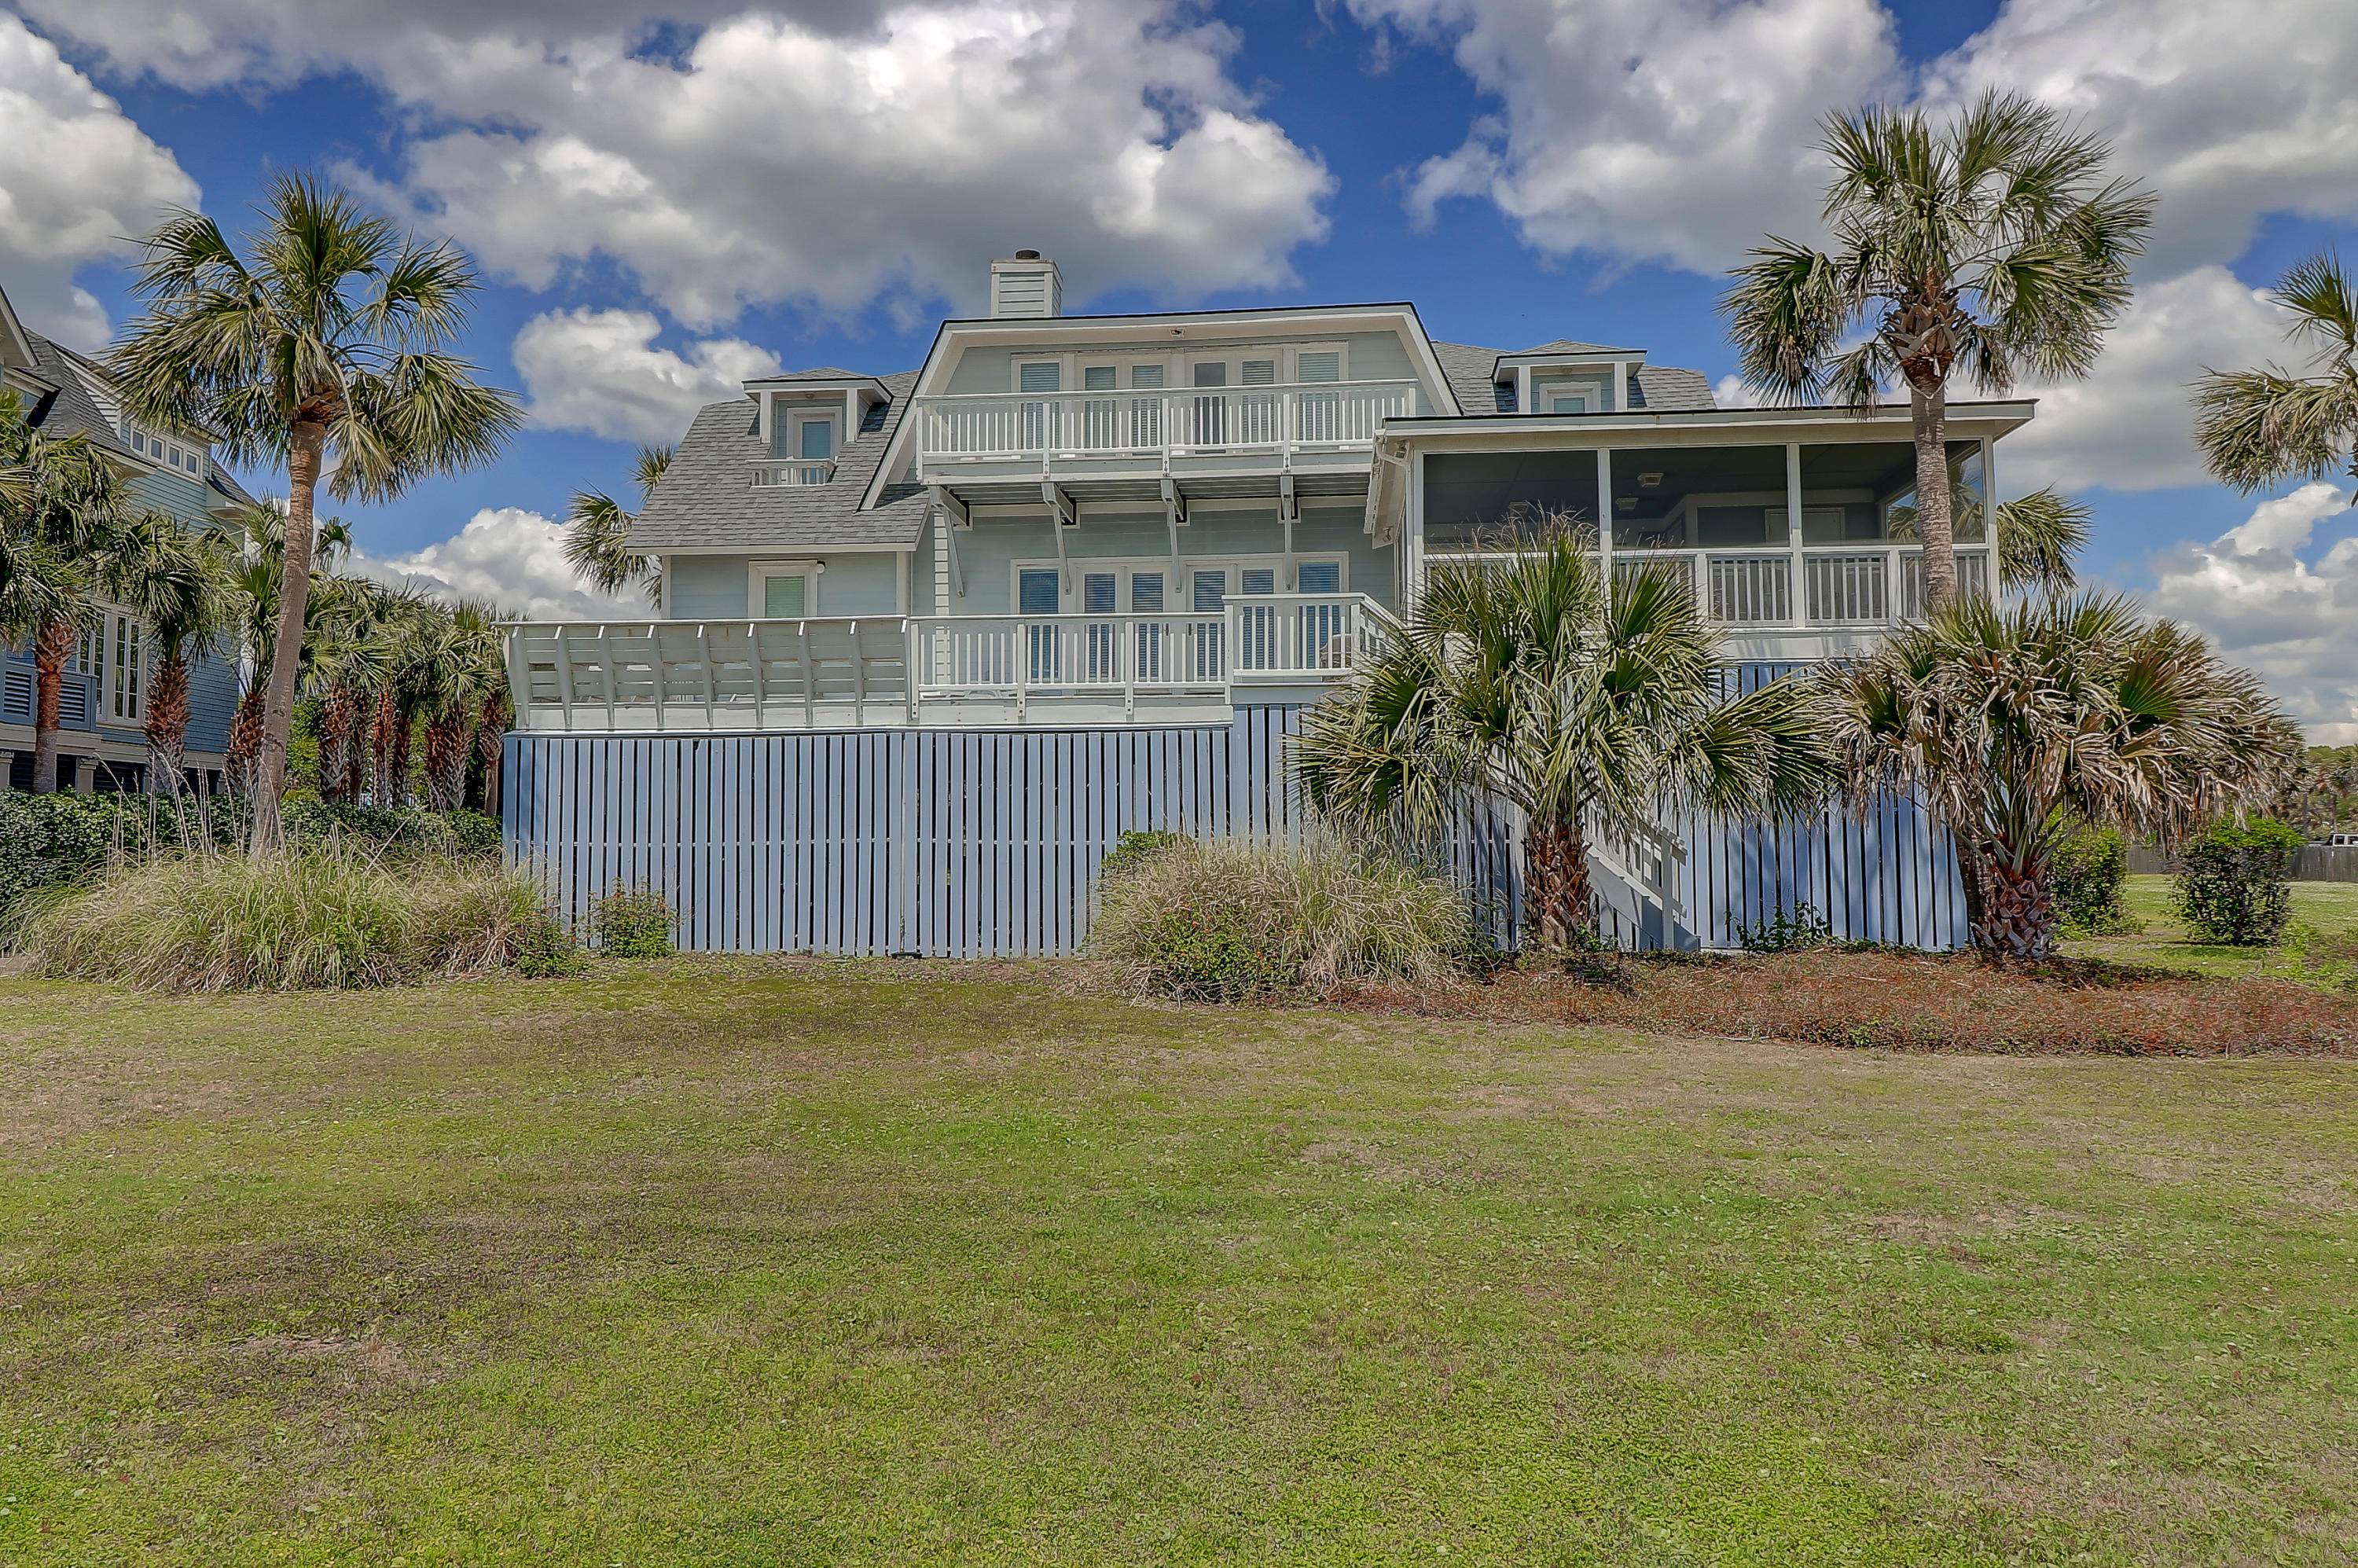 Isle of Palms Homes For Sale - 1 47th (1/13th), Isle of Palms, SC - 38